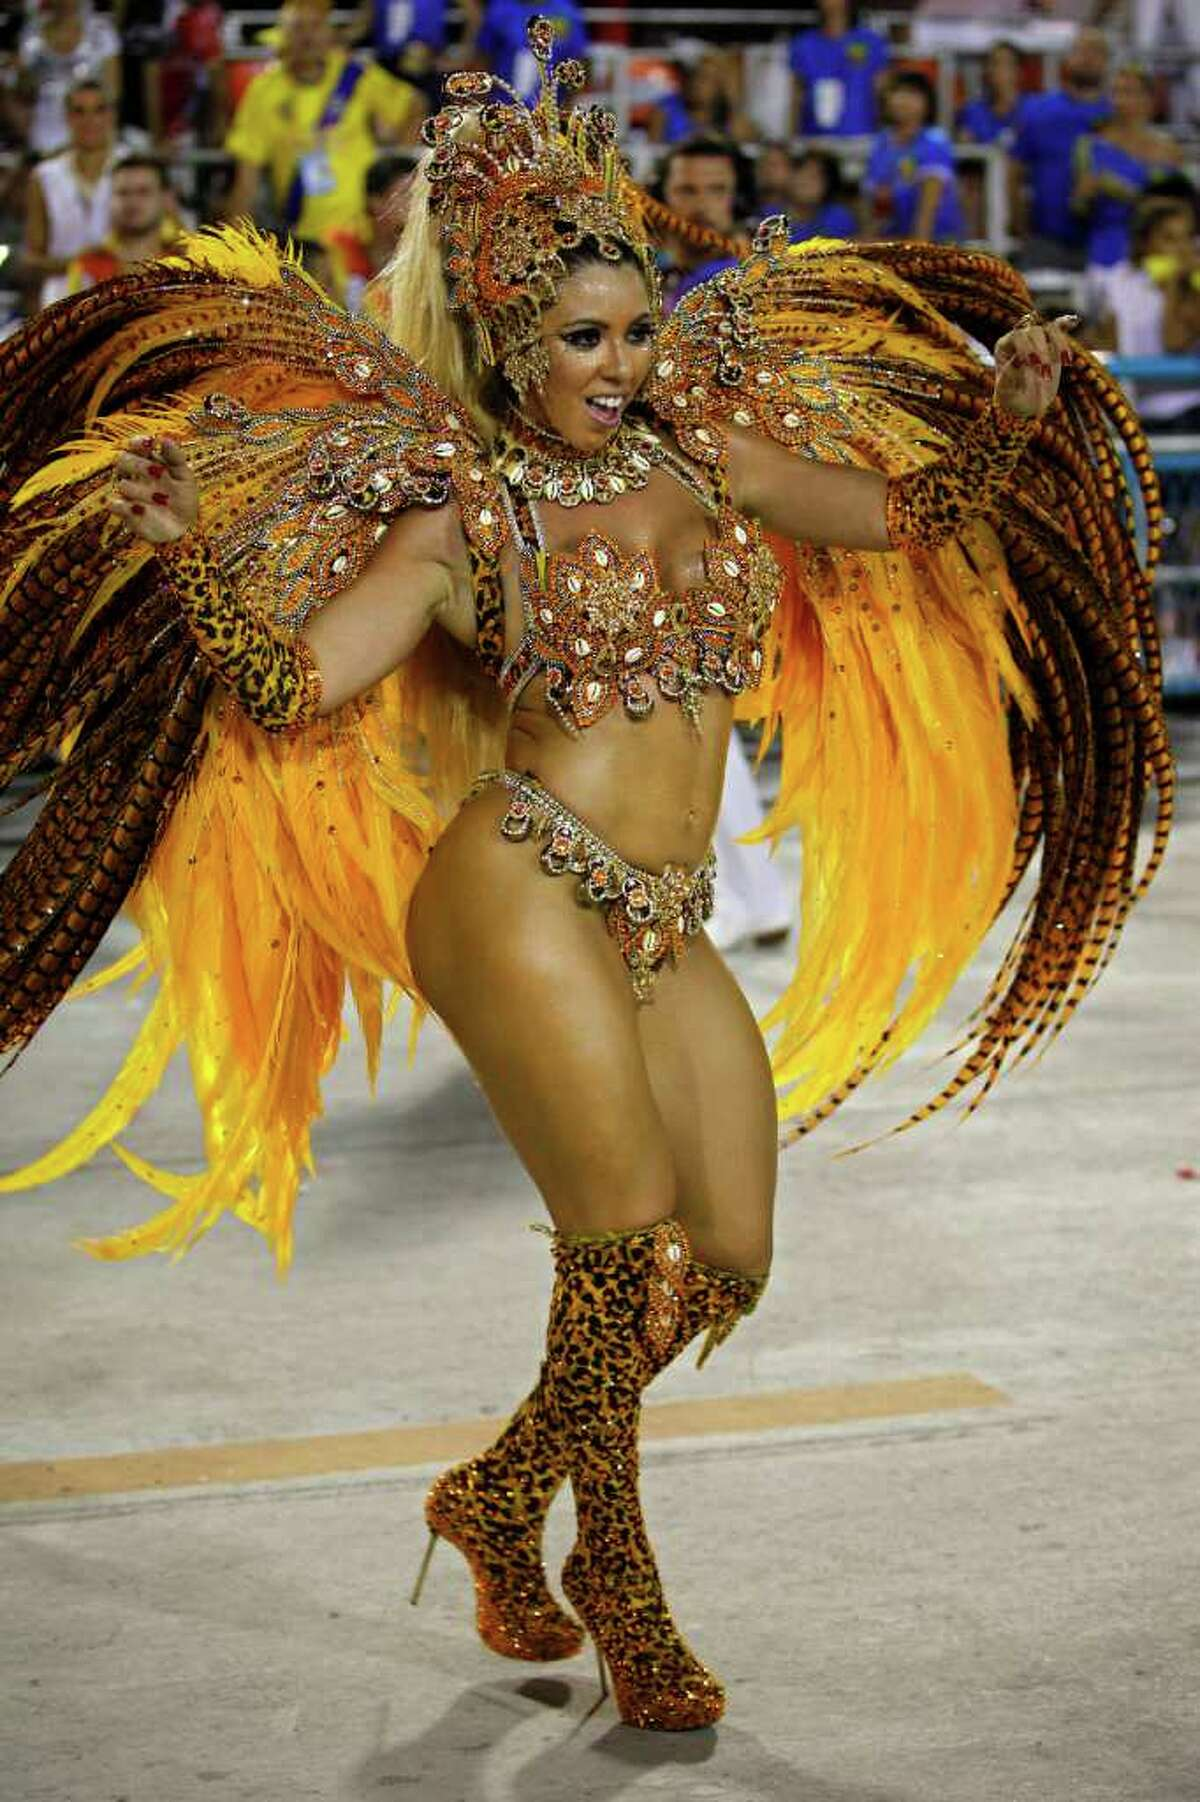 A dancer performs during Vila Isabel samba school parade at the Sambadrome during carnival celebrations in Rio de Janeiro, Brazil, Monday. Millions watched the sequin-clad samba dancers at Rio de Janeiro's iconic Carnival parade.